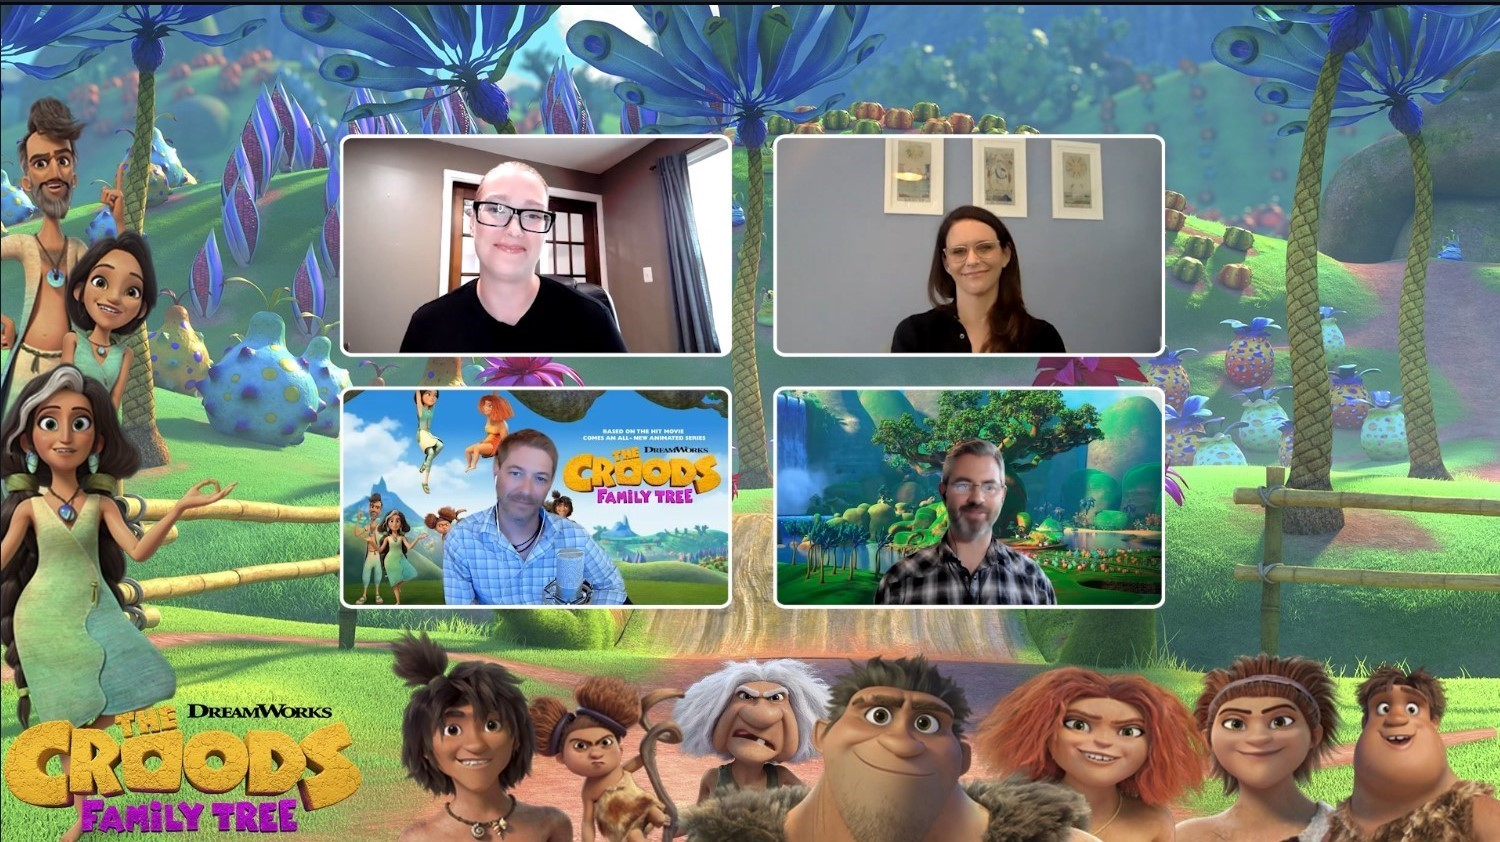 The Croods: Family Tree Review & Interview